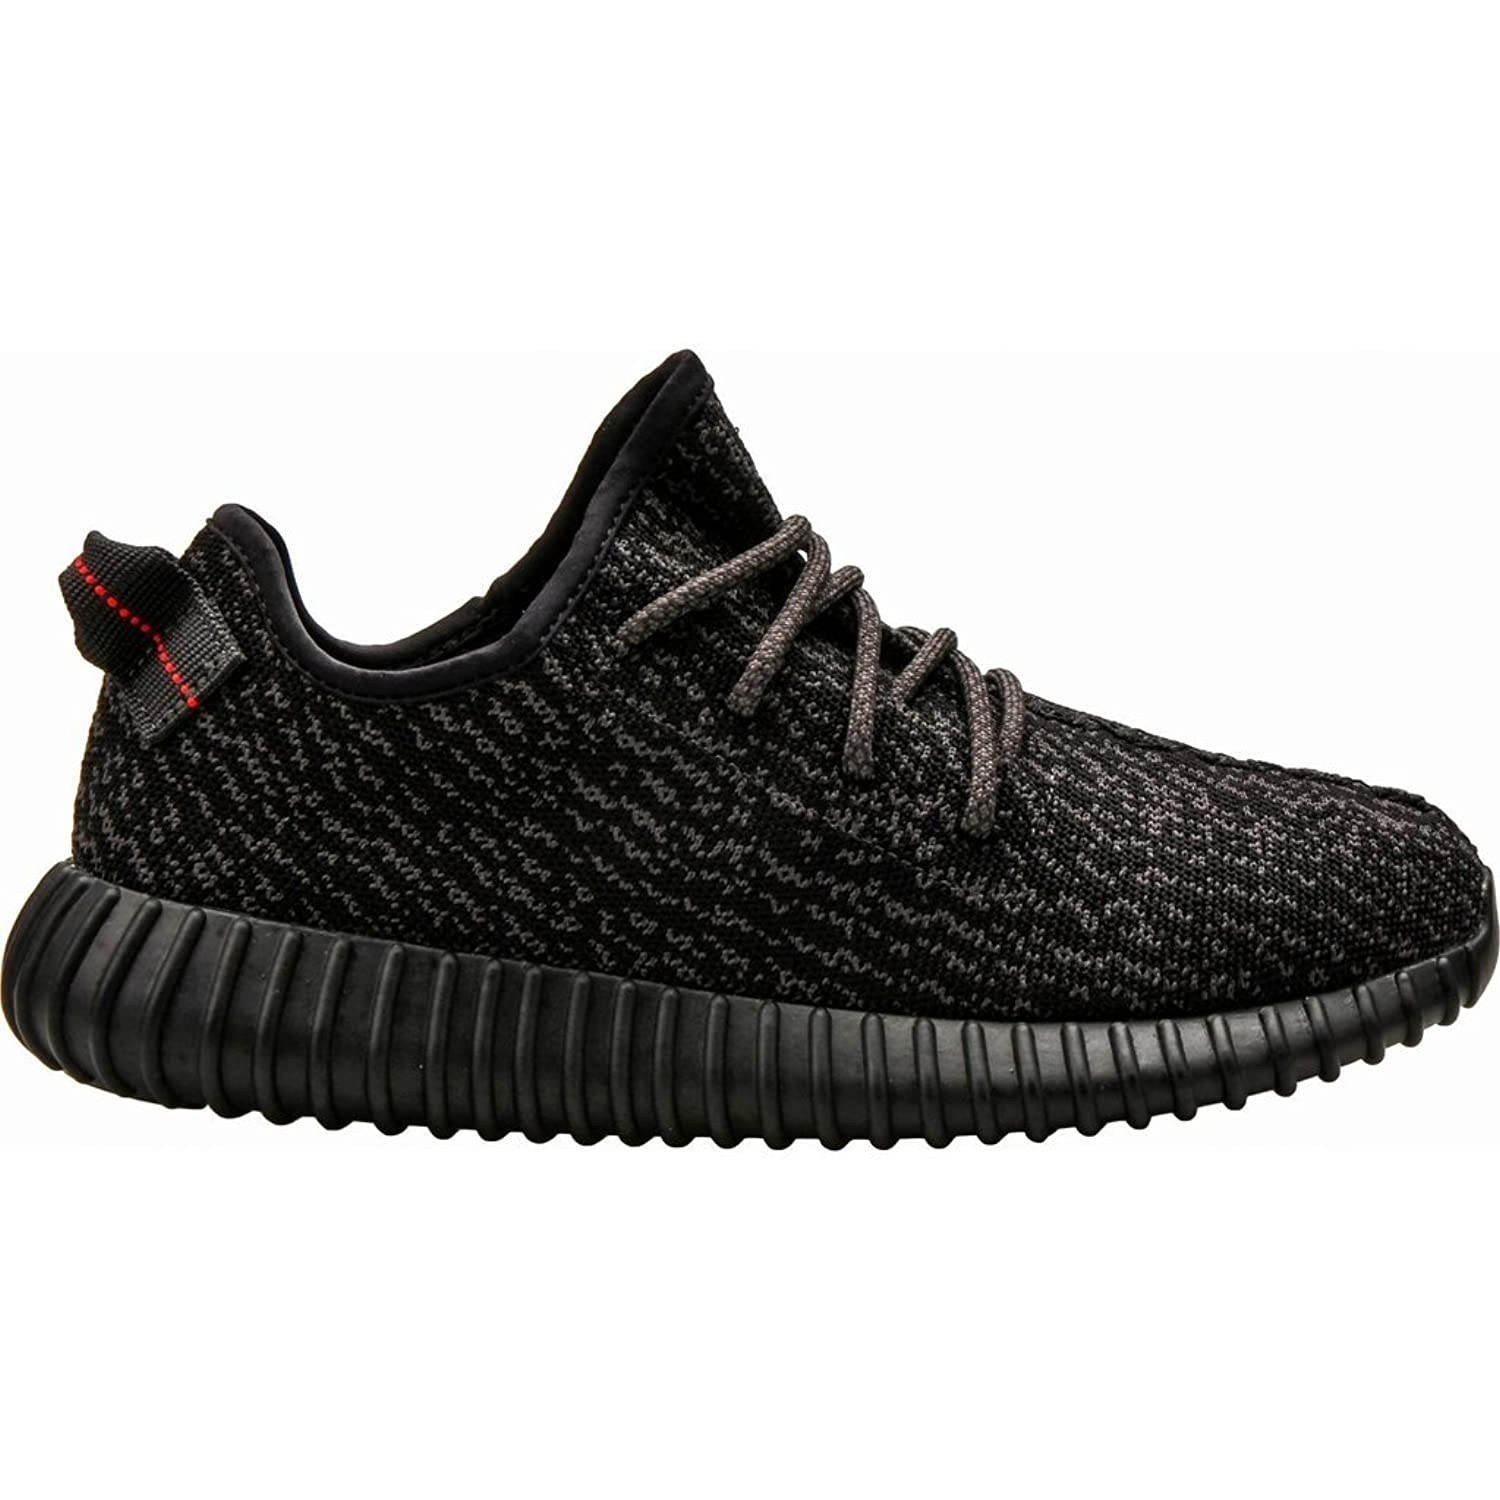 adidas originals yeezy boost 350 amazon